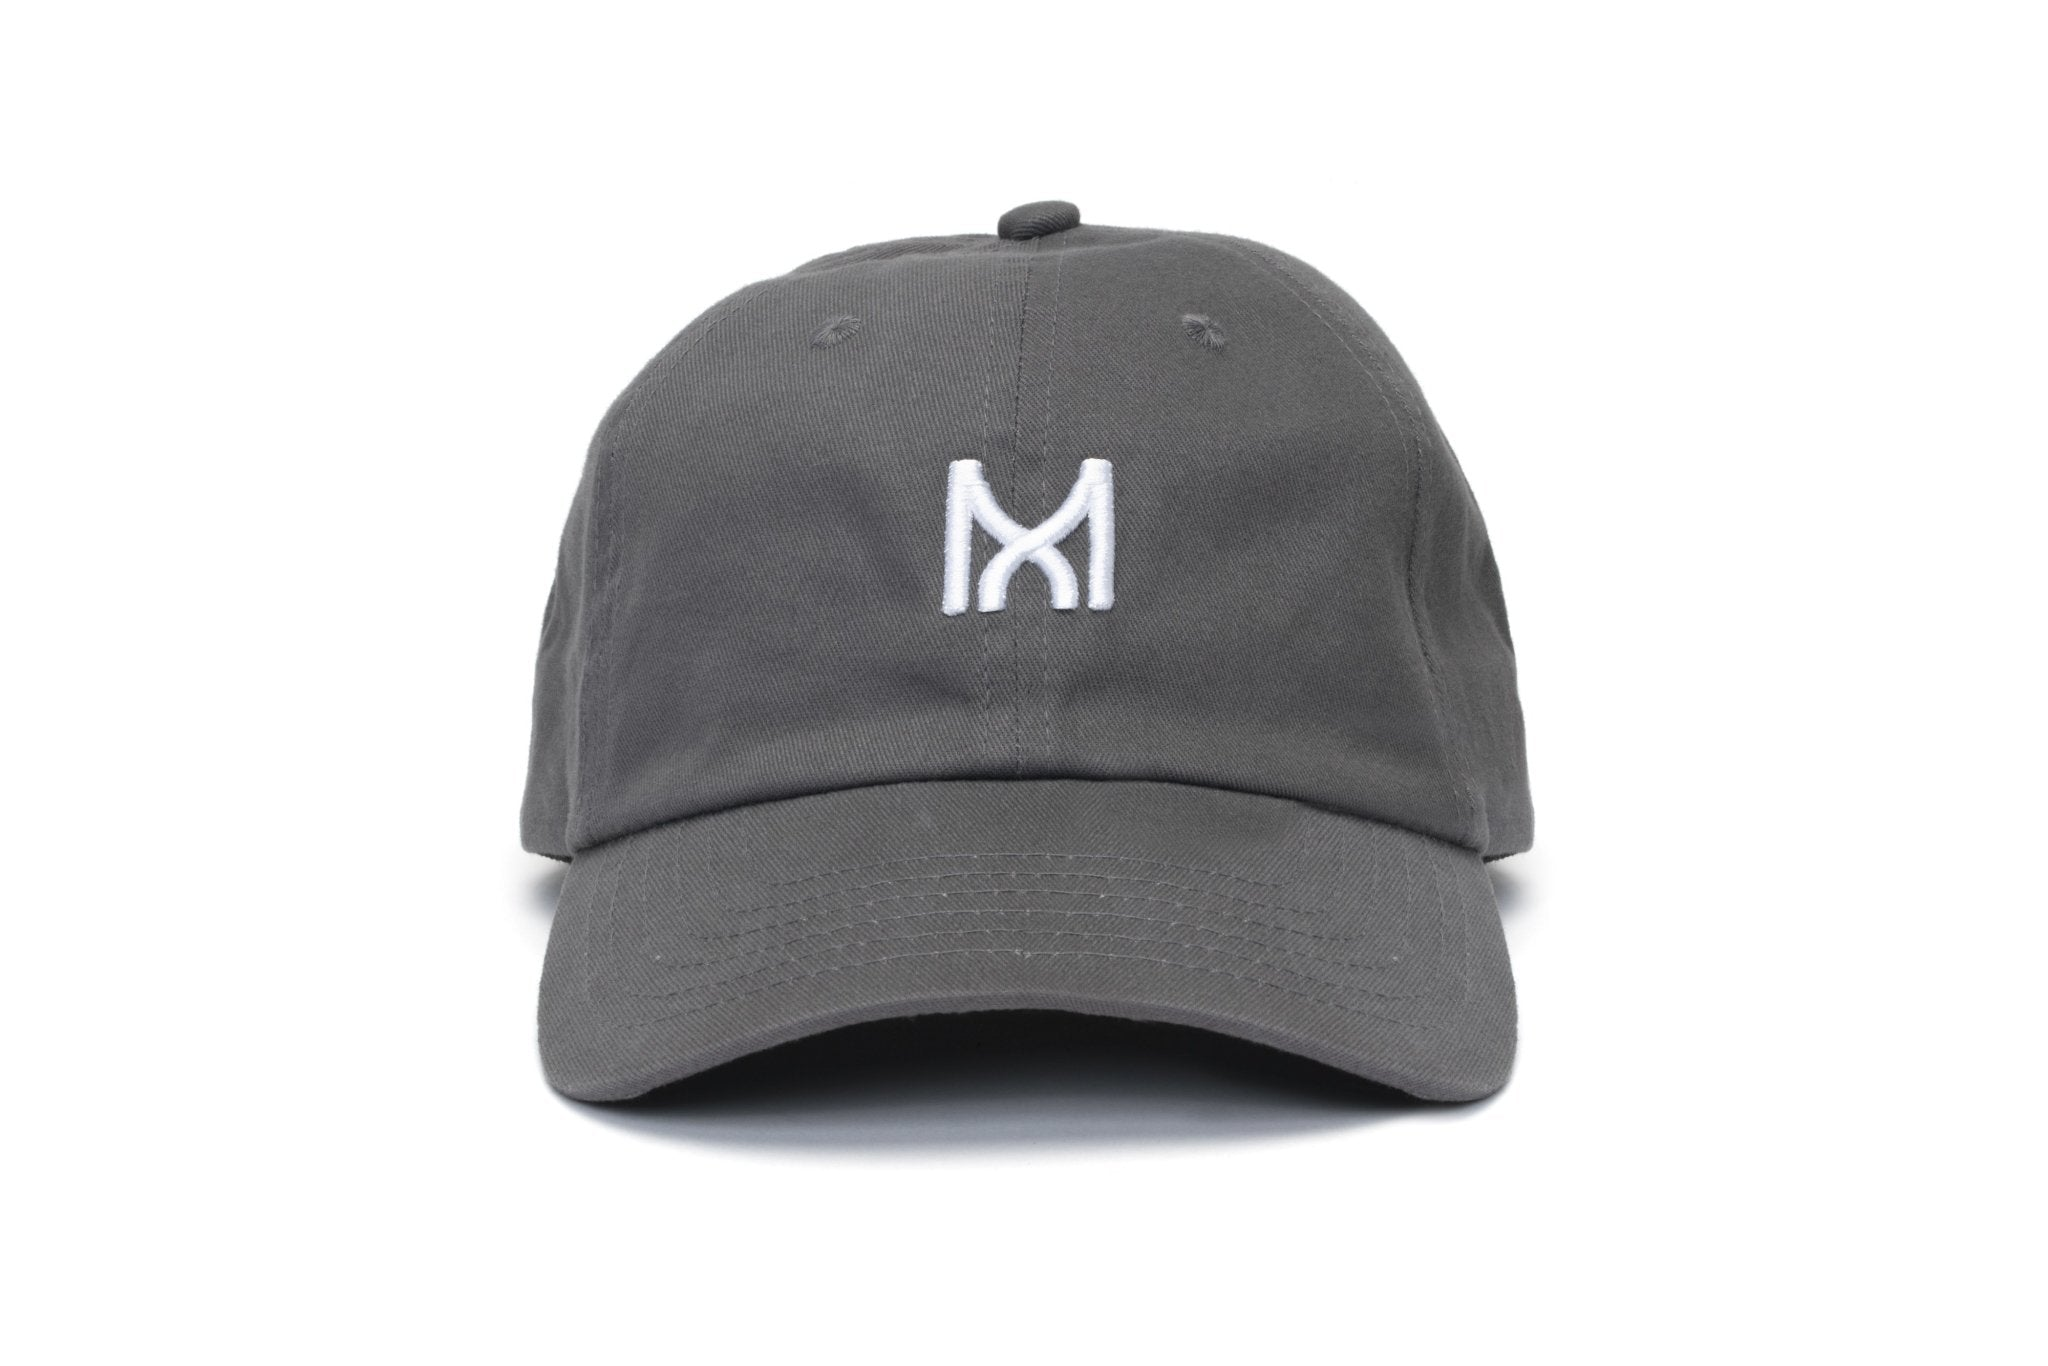 Grey Sports Cap - Madefor